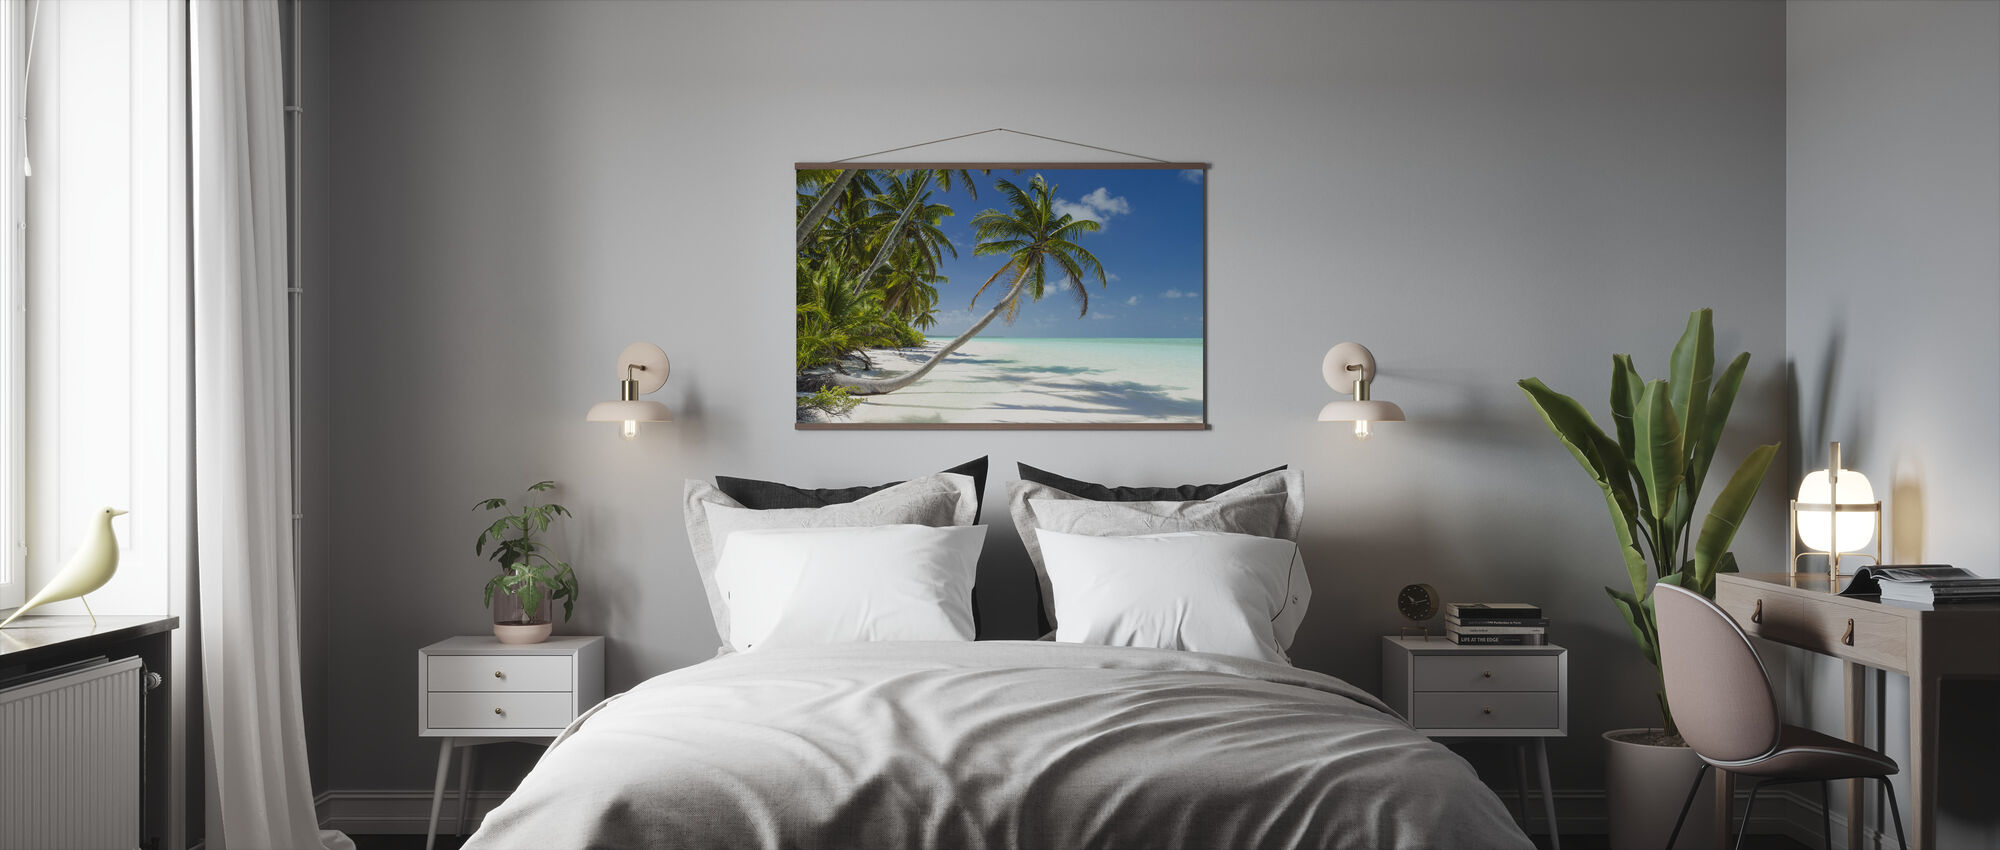 Lagoon and Palm Trees - Poster - Bedroom